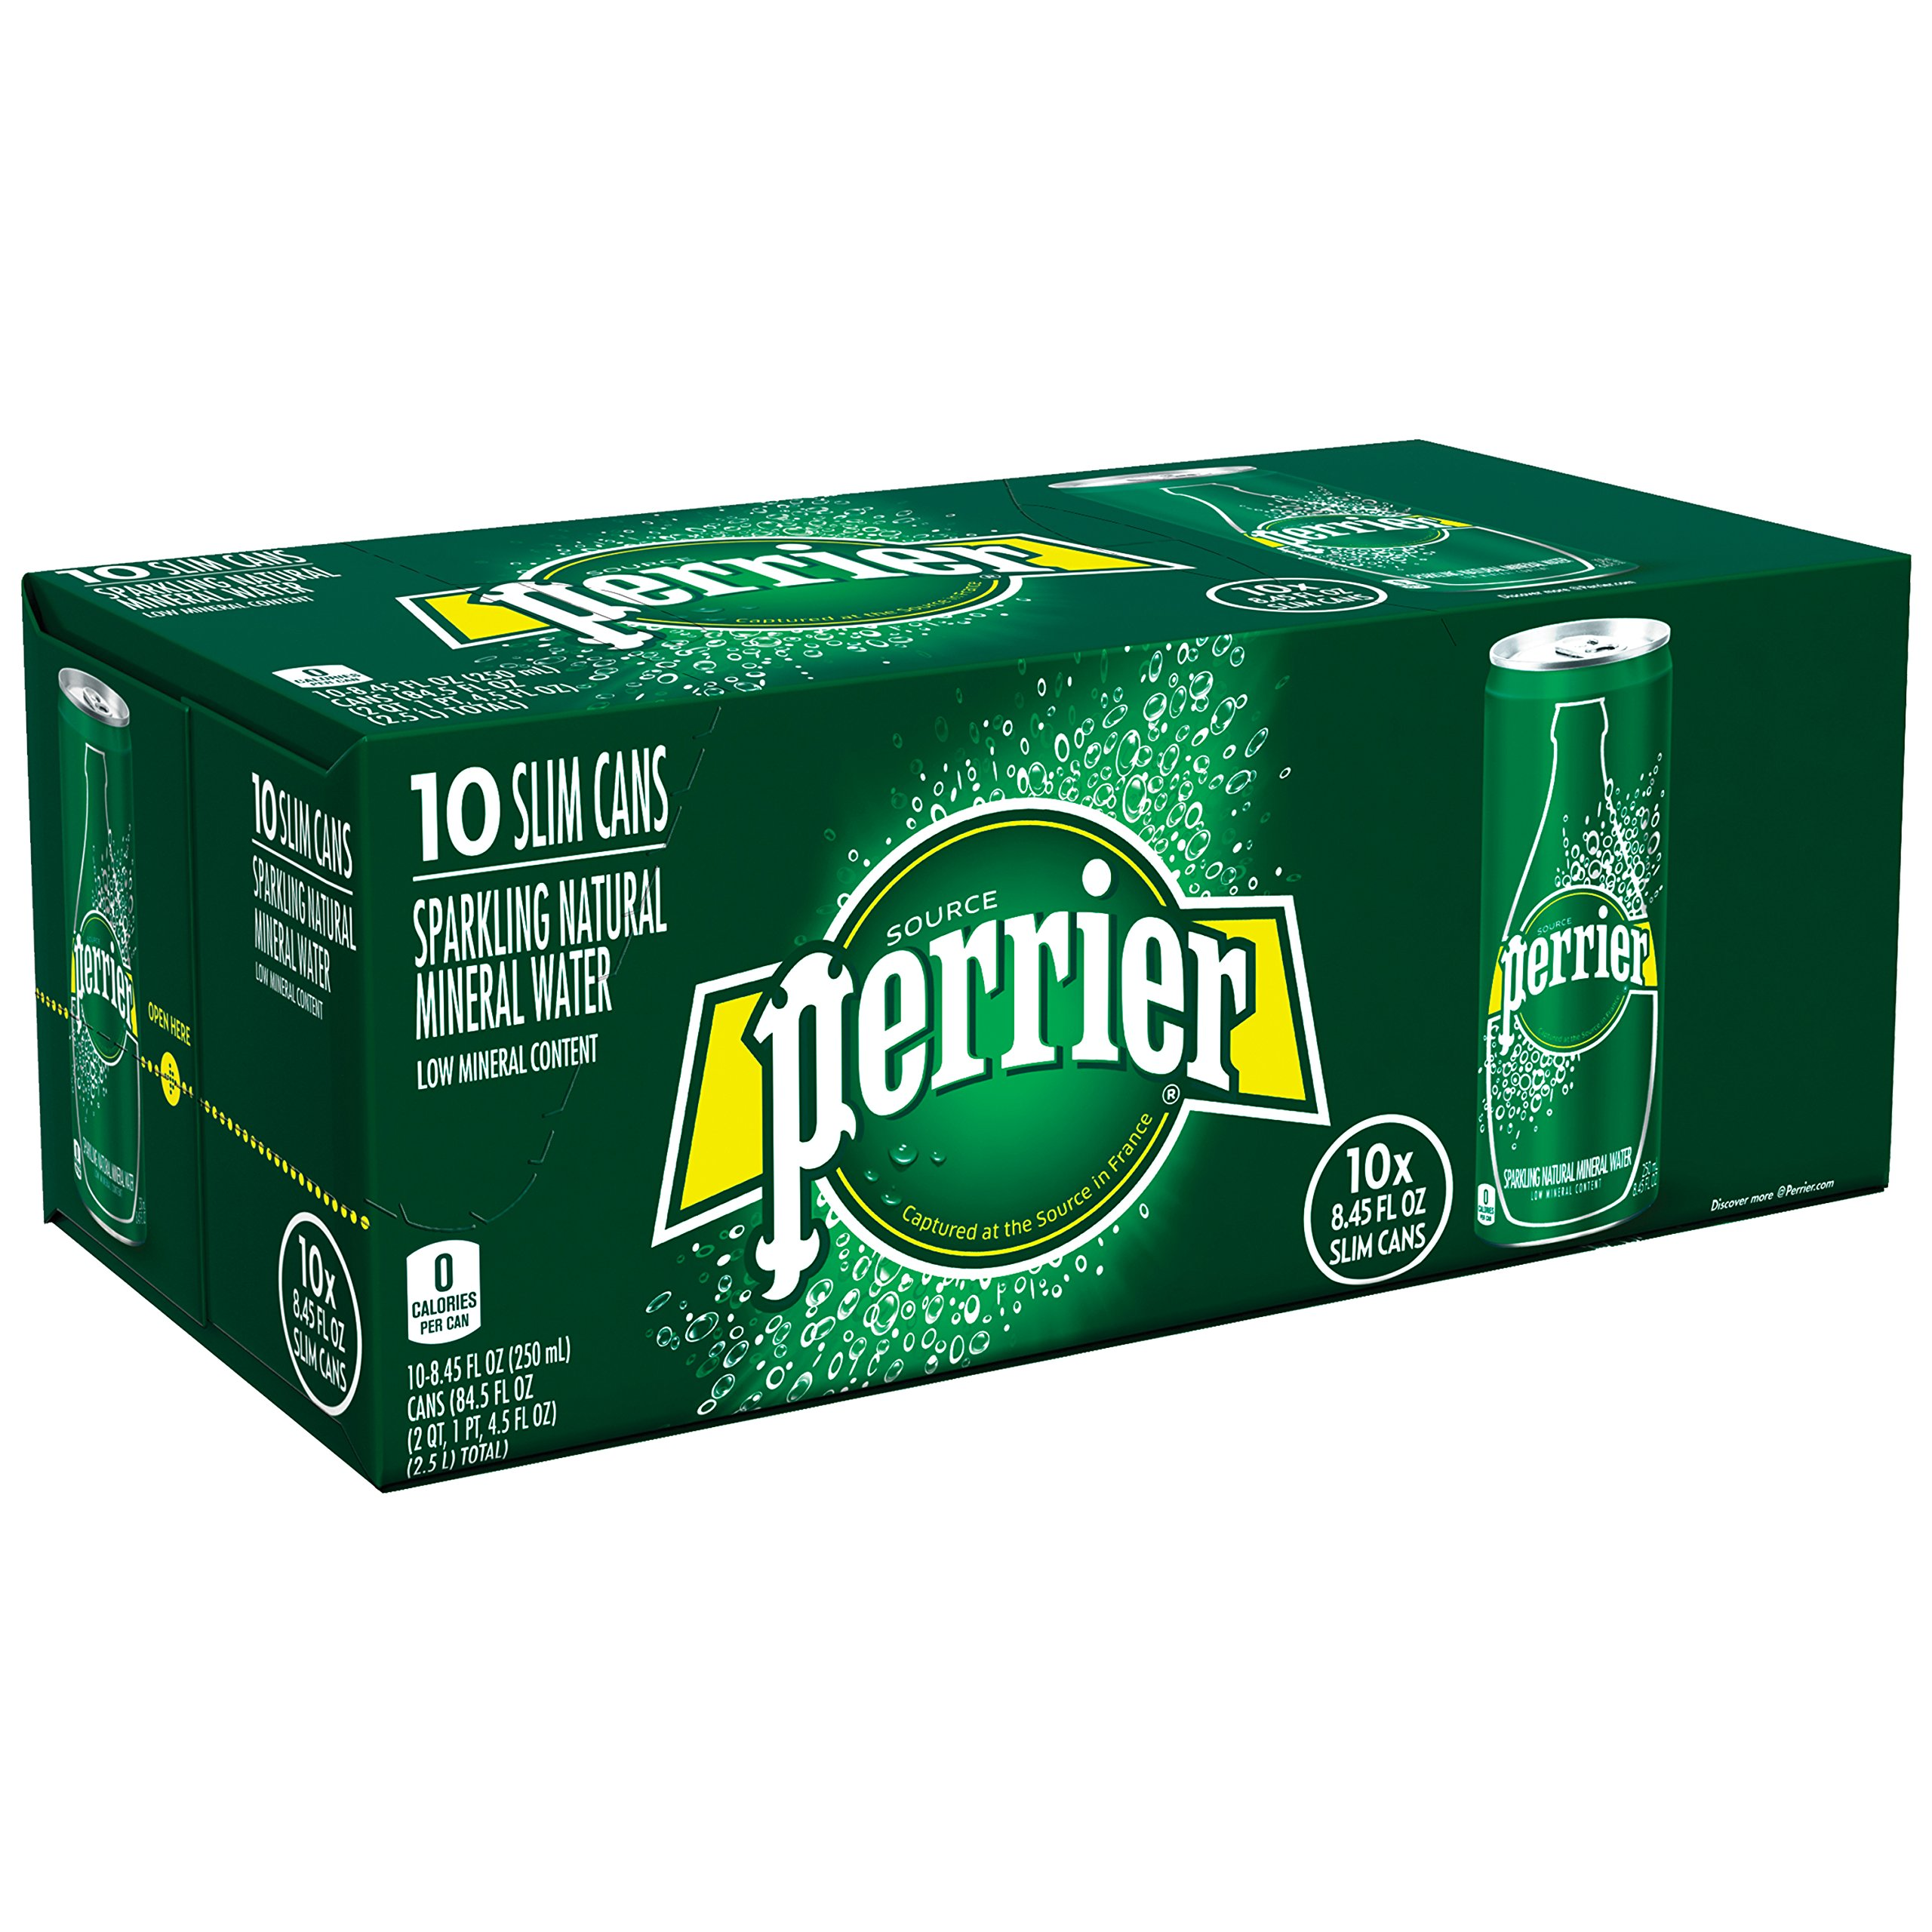 Perrier Carbonated Mineral Water, 8.45 fl oz. Slim Cans (10 Count)